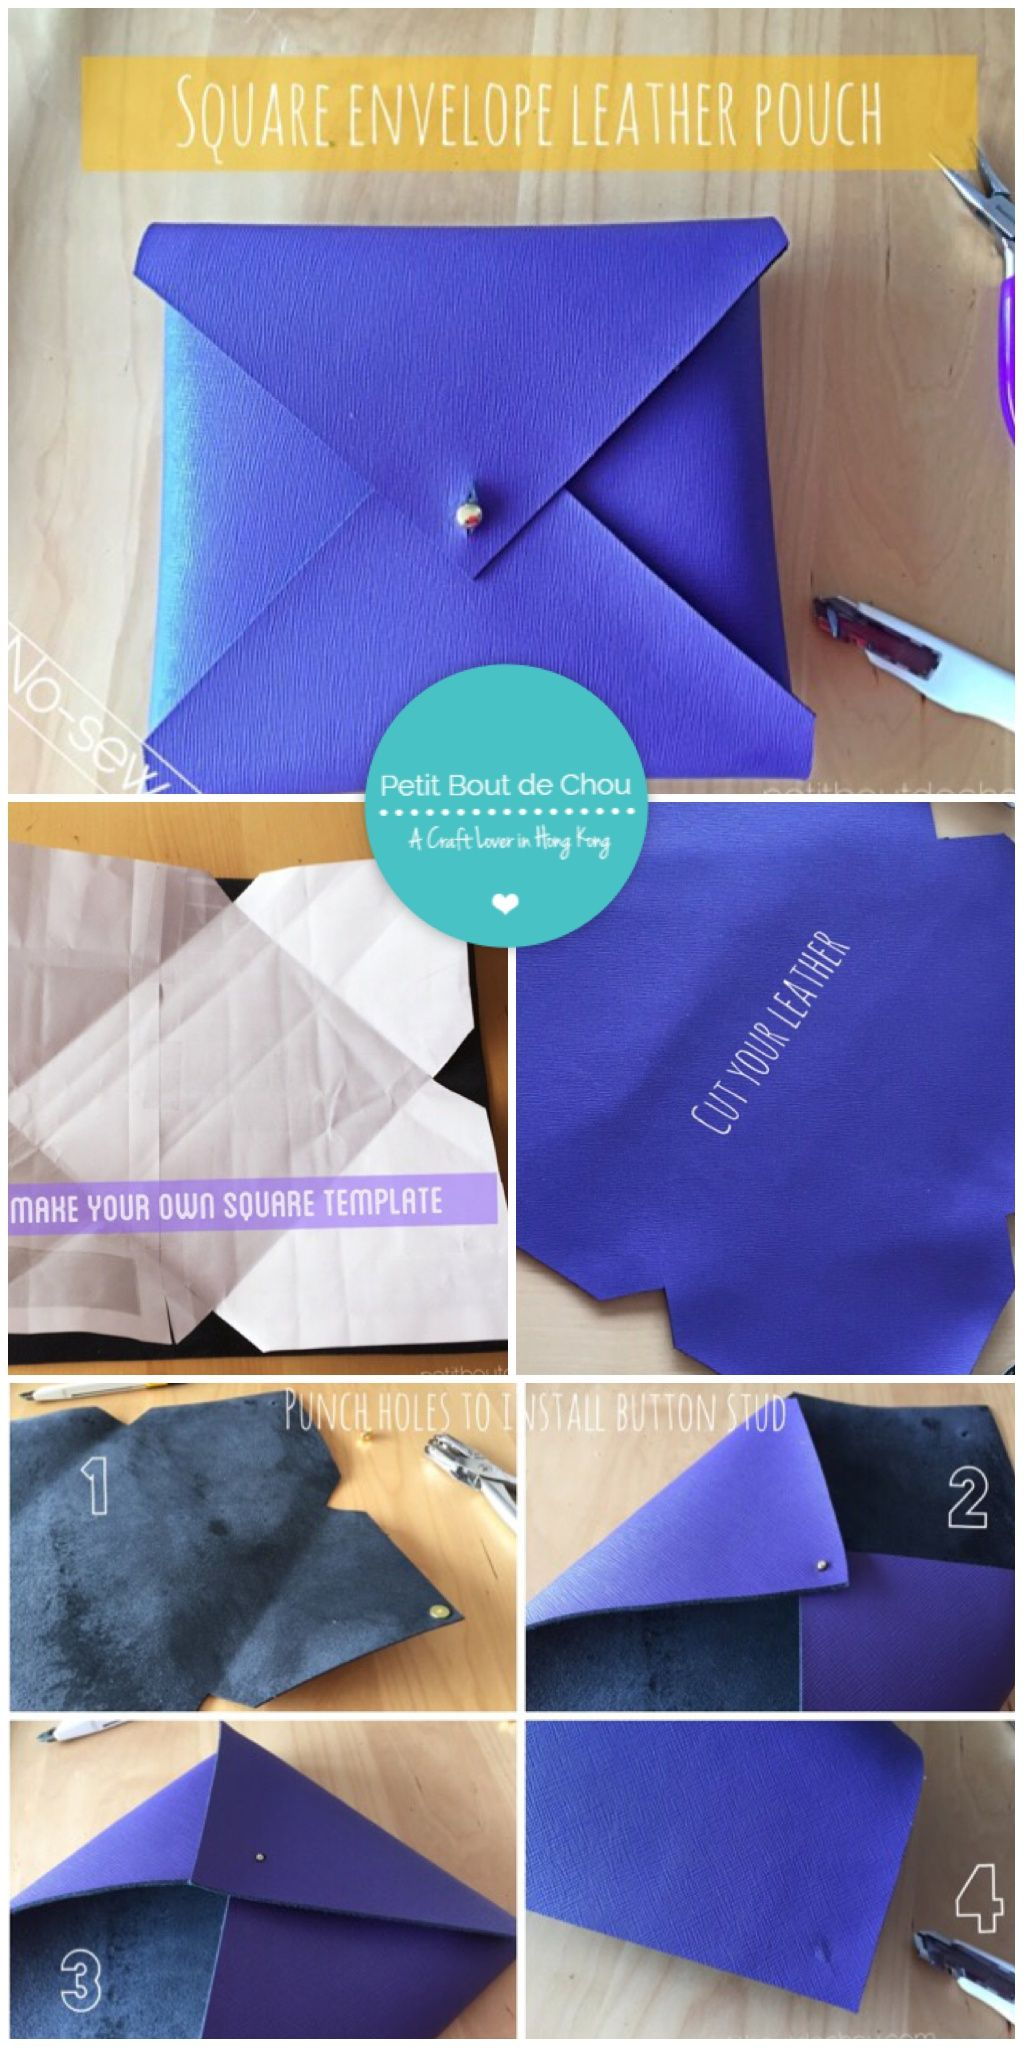 Easy no-sew DIY: square envelope leather pouch with free pattern ...